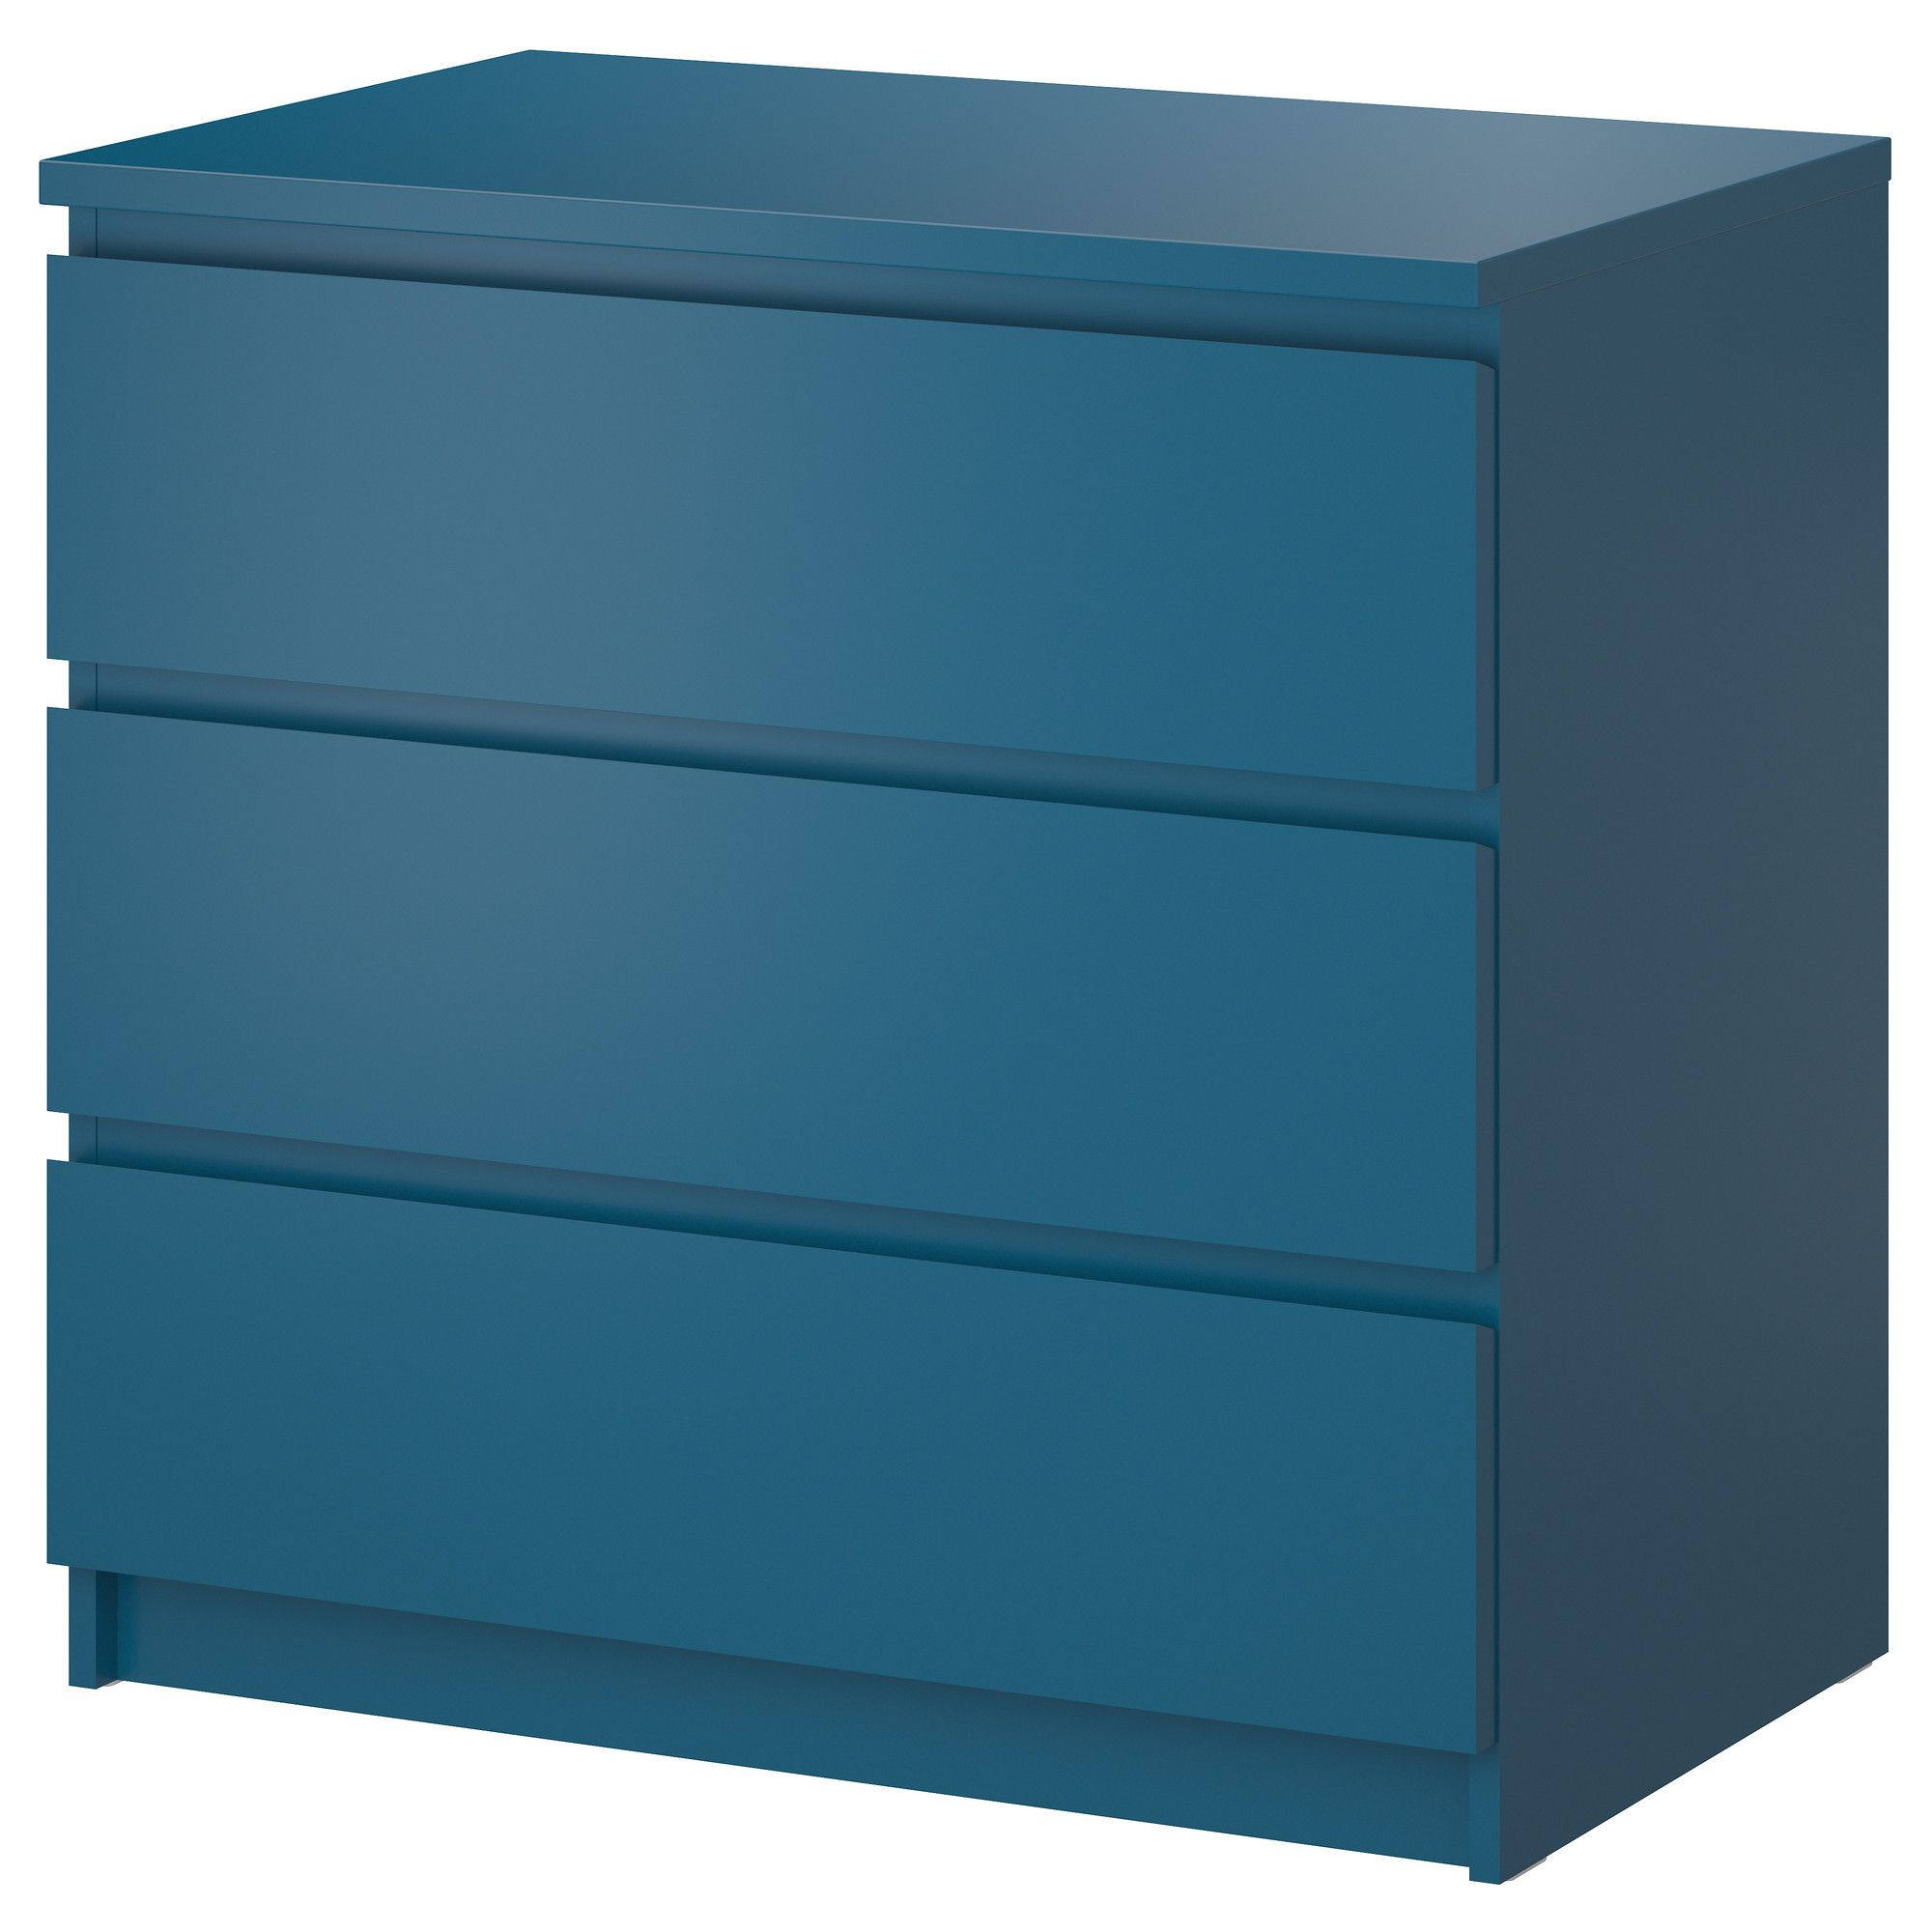 129 malm chest of 3 drawers turquoise ikea studio redesign pinterest malm. Black Bedroom Furniture Sets. Home Design Ideas